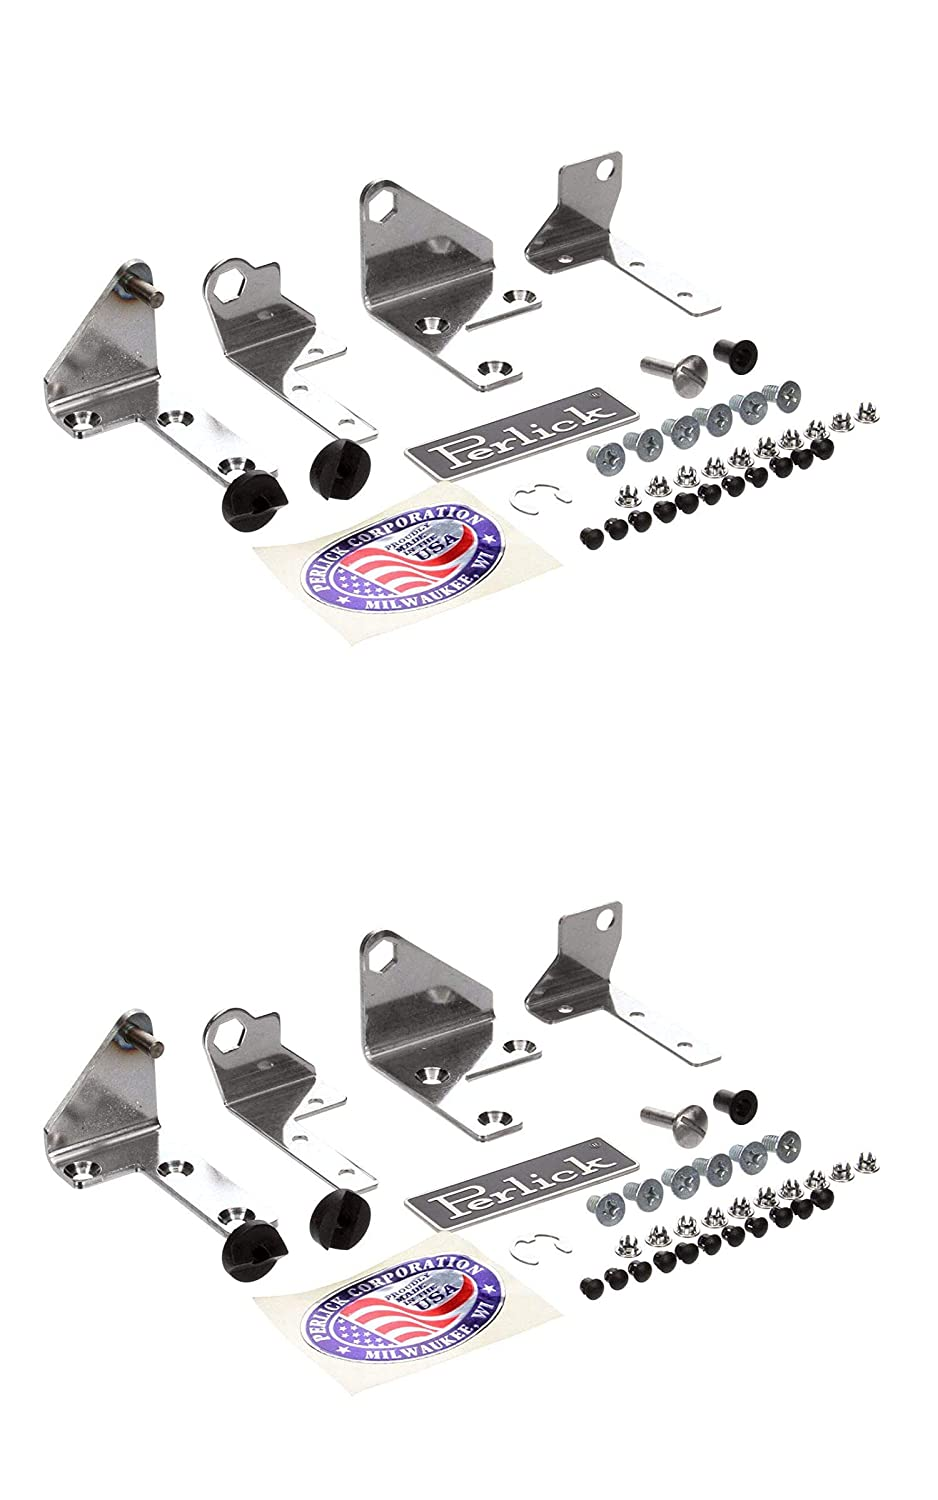 Our shop NEW before selling most popular Perlick 67439R Right Hand Kit 2 Hinge